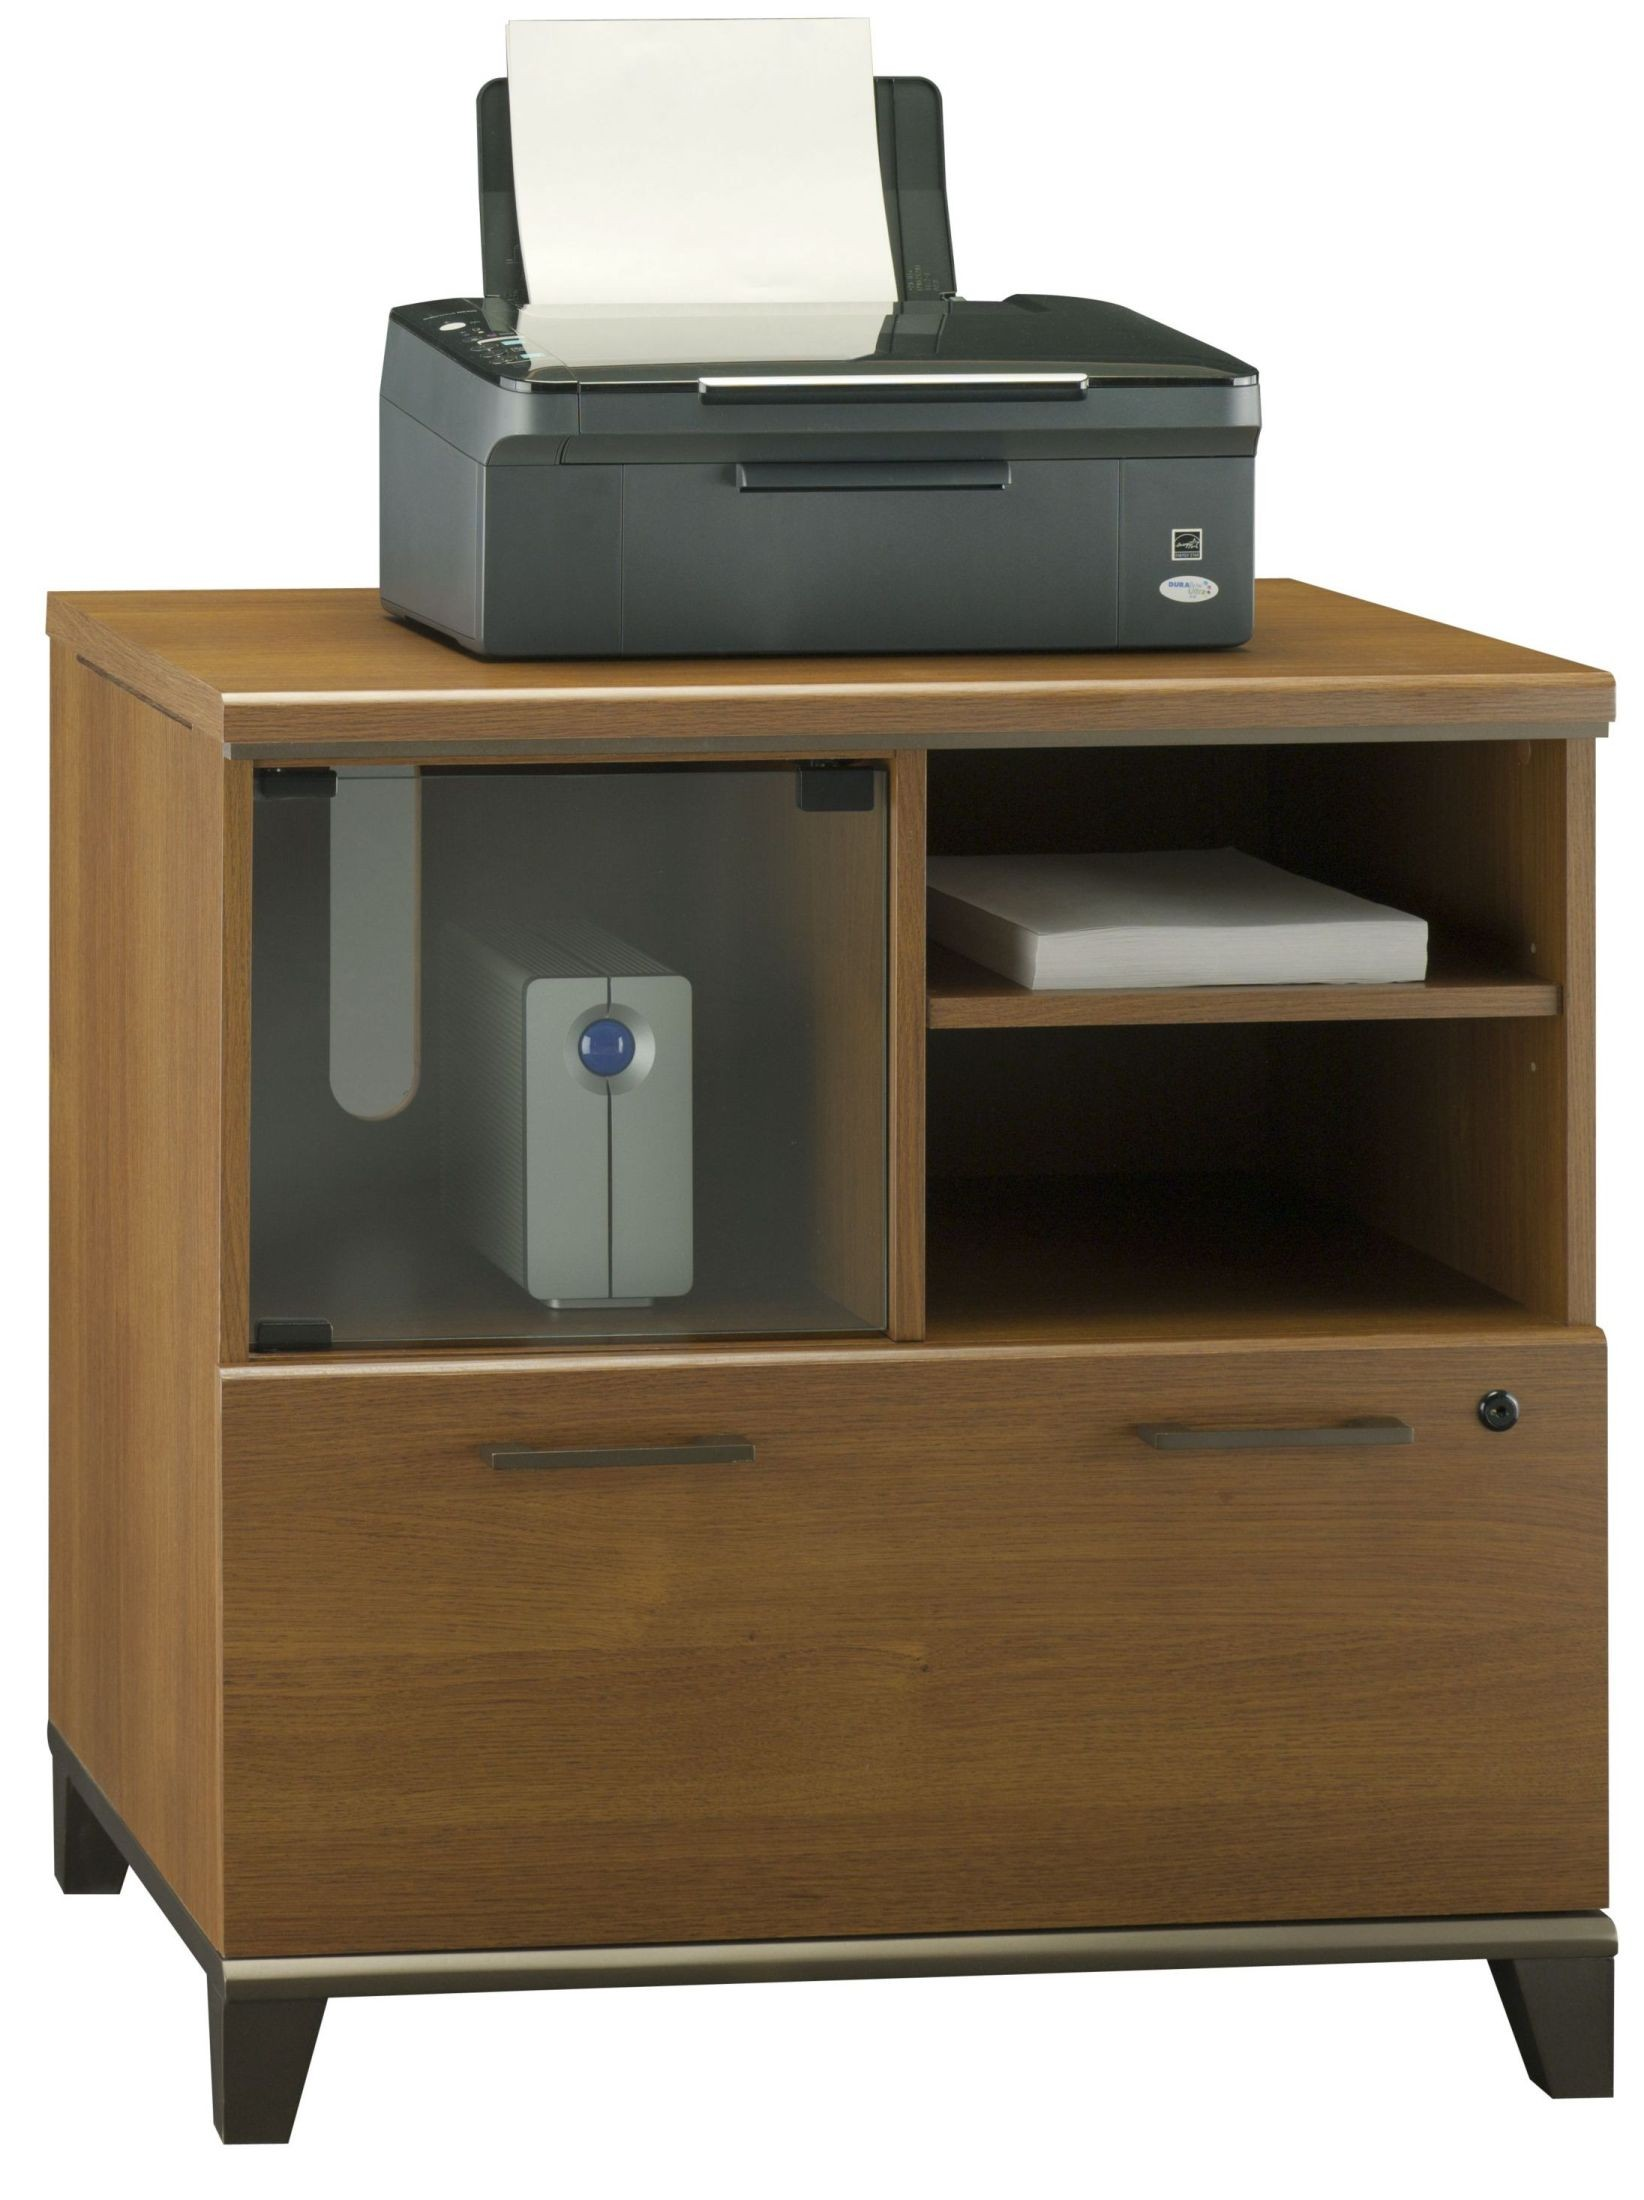 Achieve Warm Oak Lateral File/Printer Stand From Bush (PR67390) | Coleman  Furniture